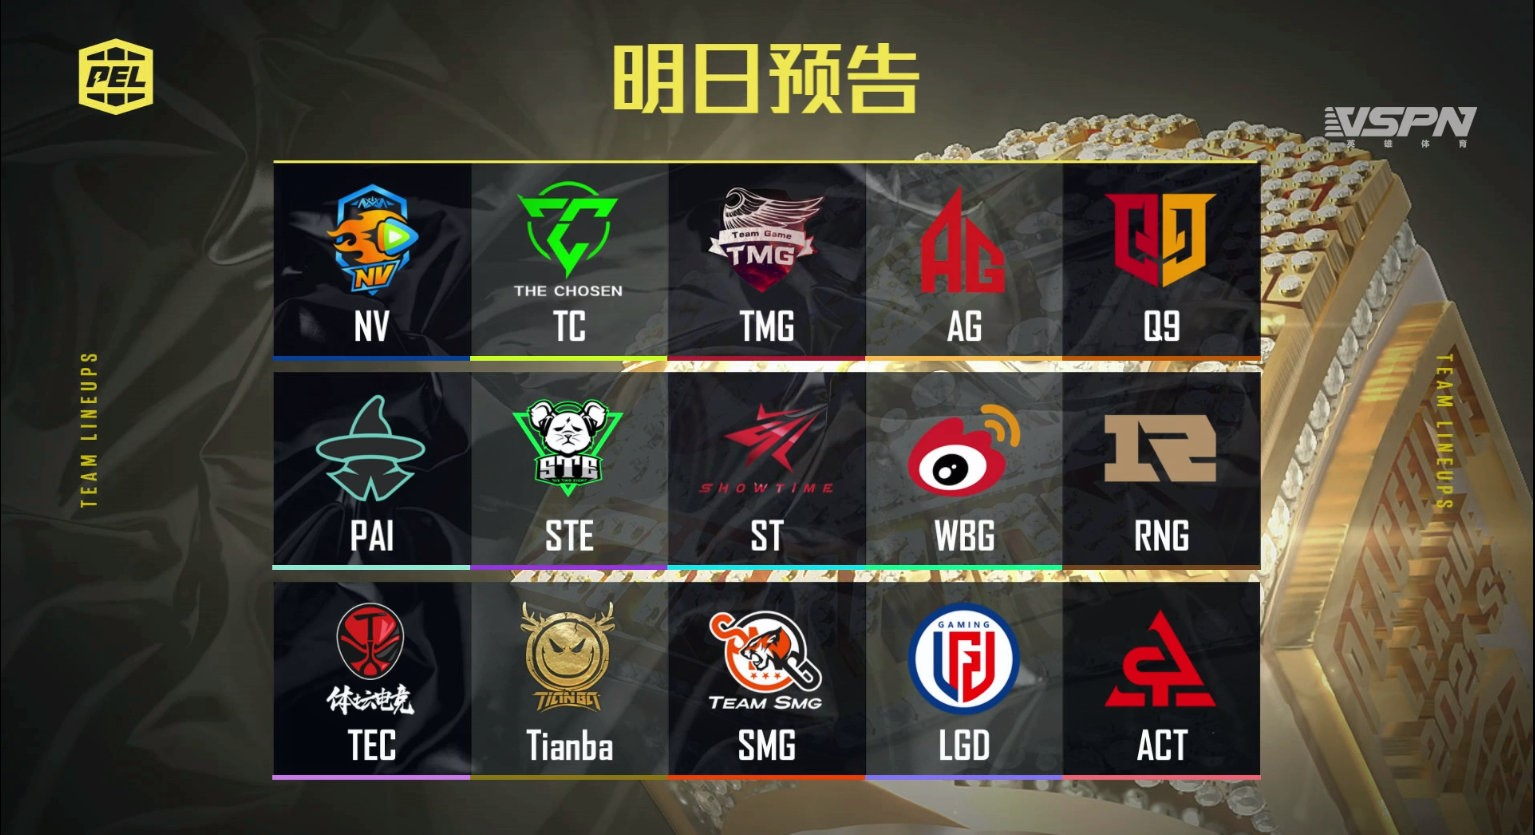 These are the teams who will be participating in the PEL 2021 Season 1: Week 5 Finals.